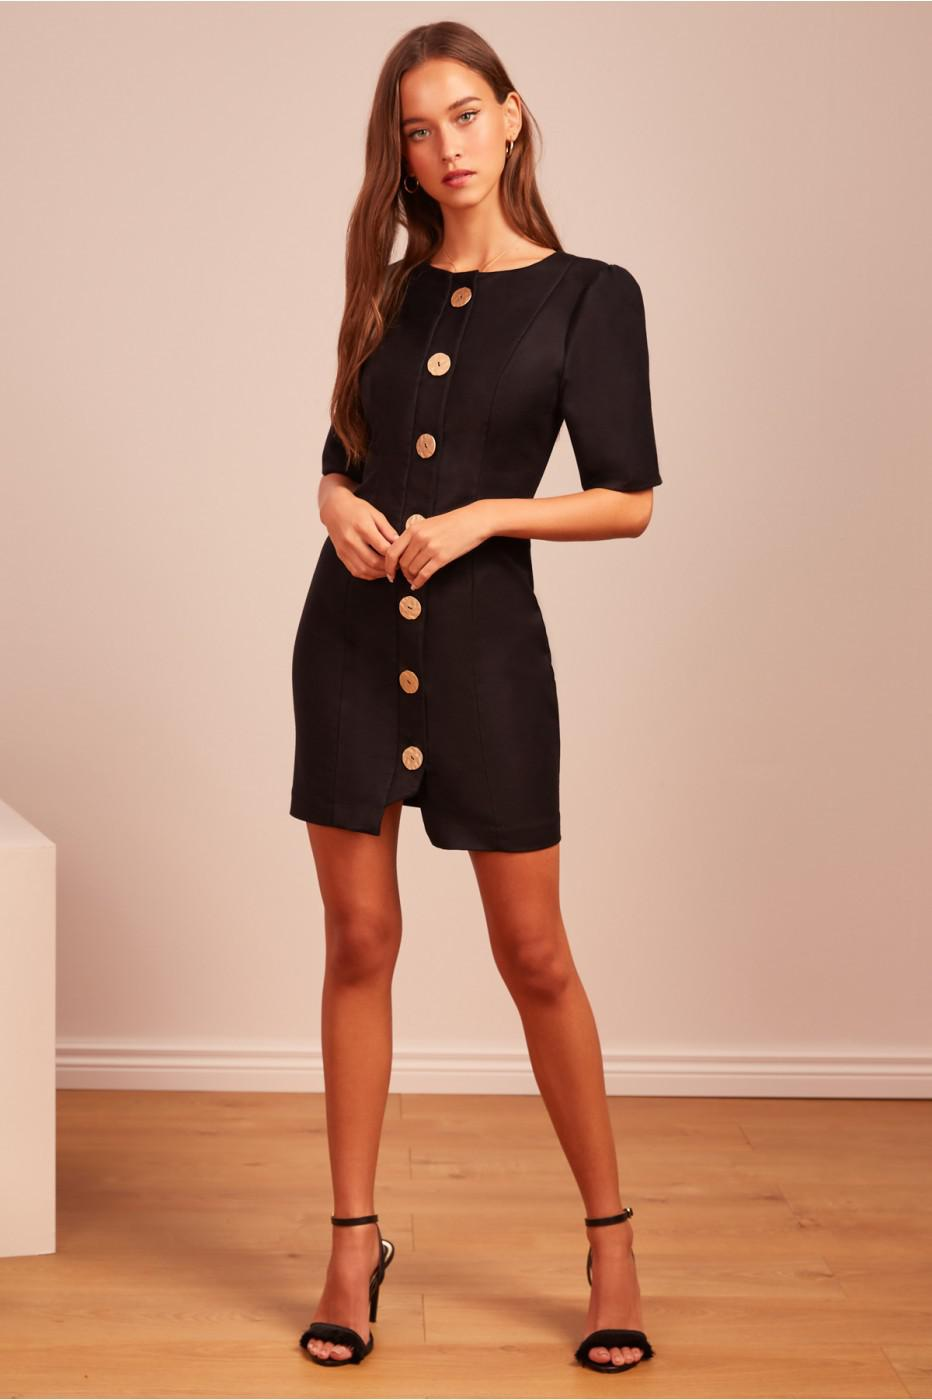 aafde83a19b2 Finders Keepers Pompeii Mini Dress in Black - Lyst